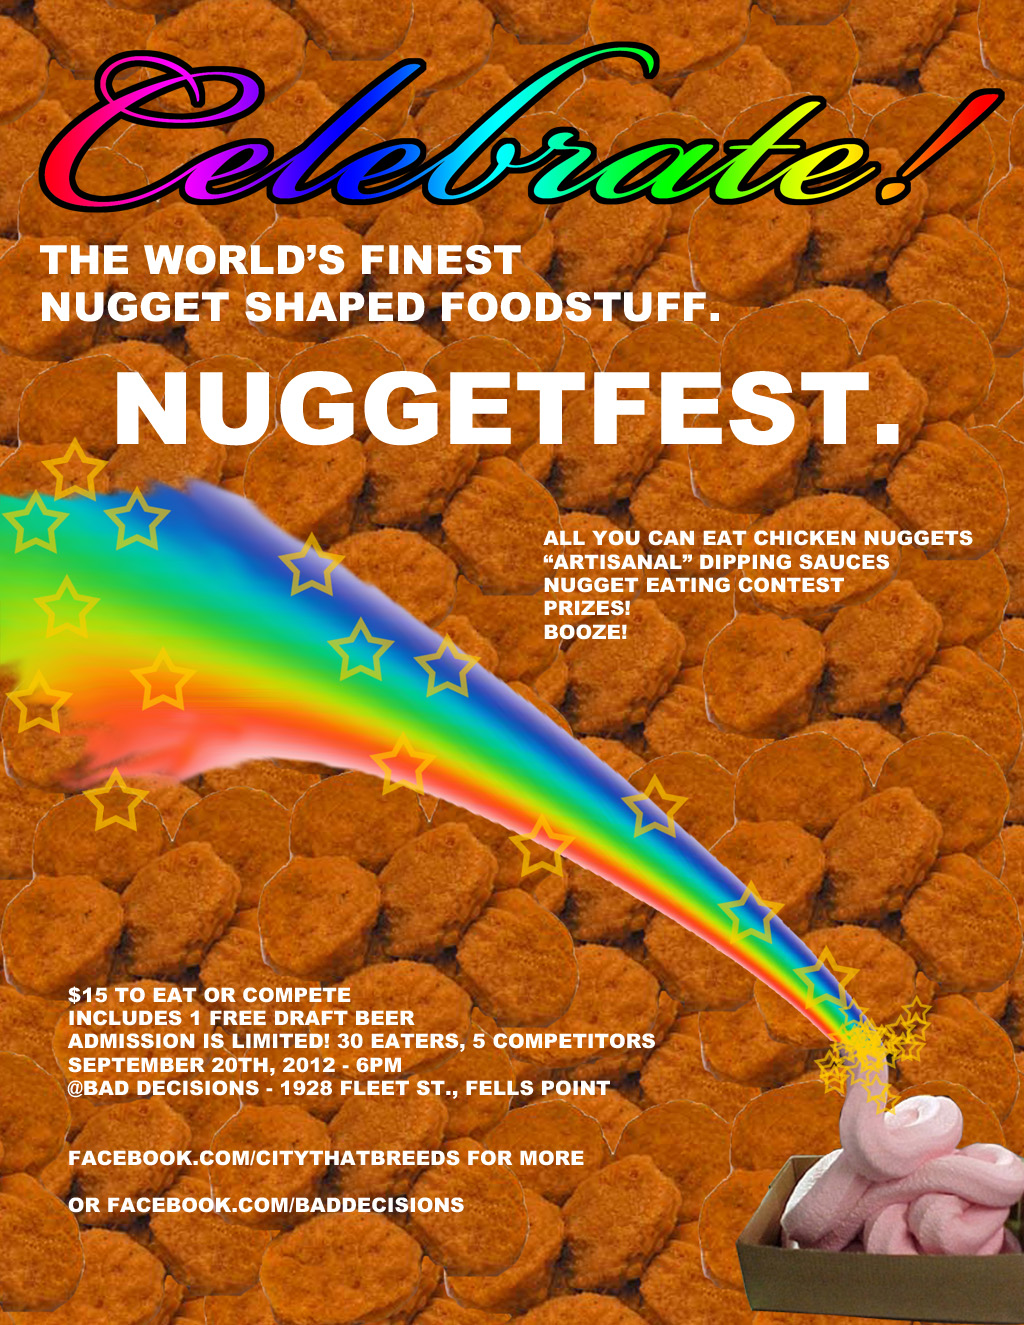 Nuggetfest: A celebration of Nuggets.